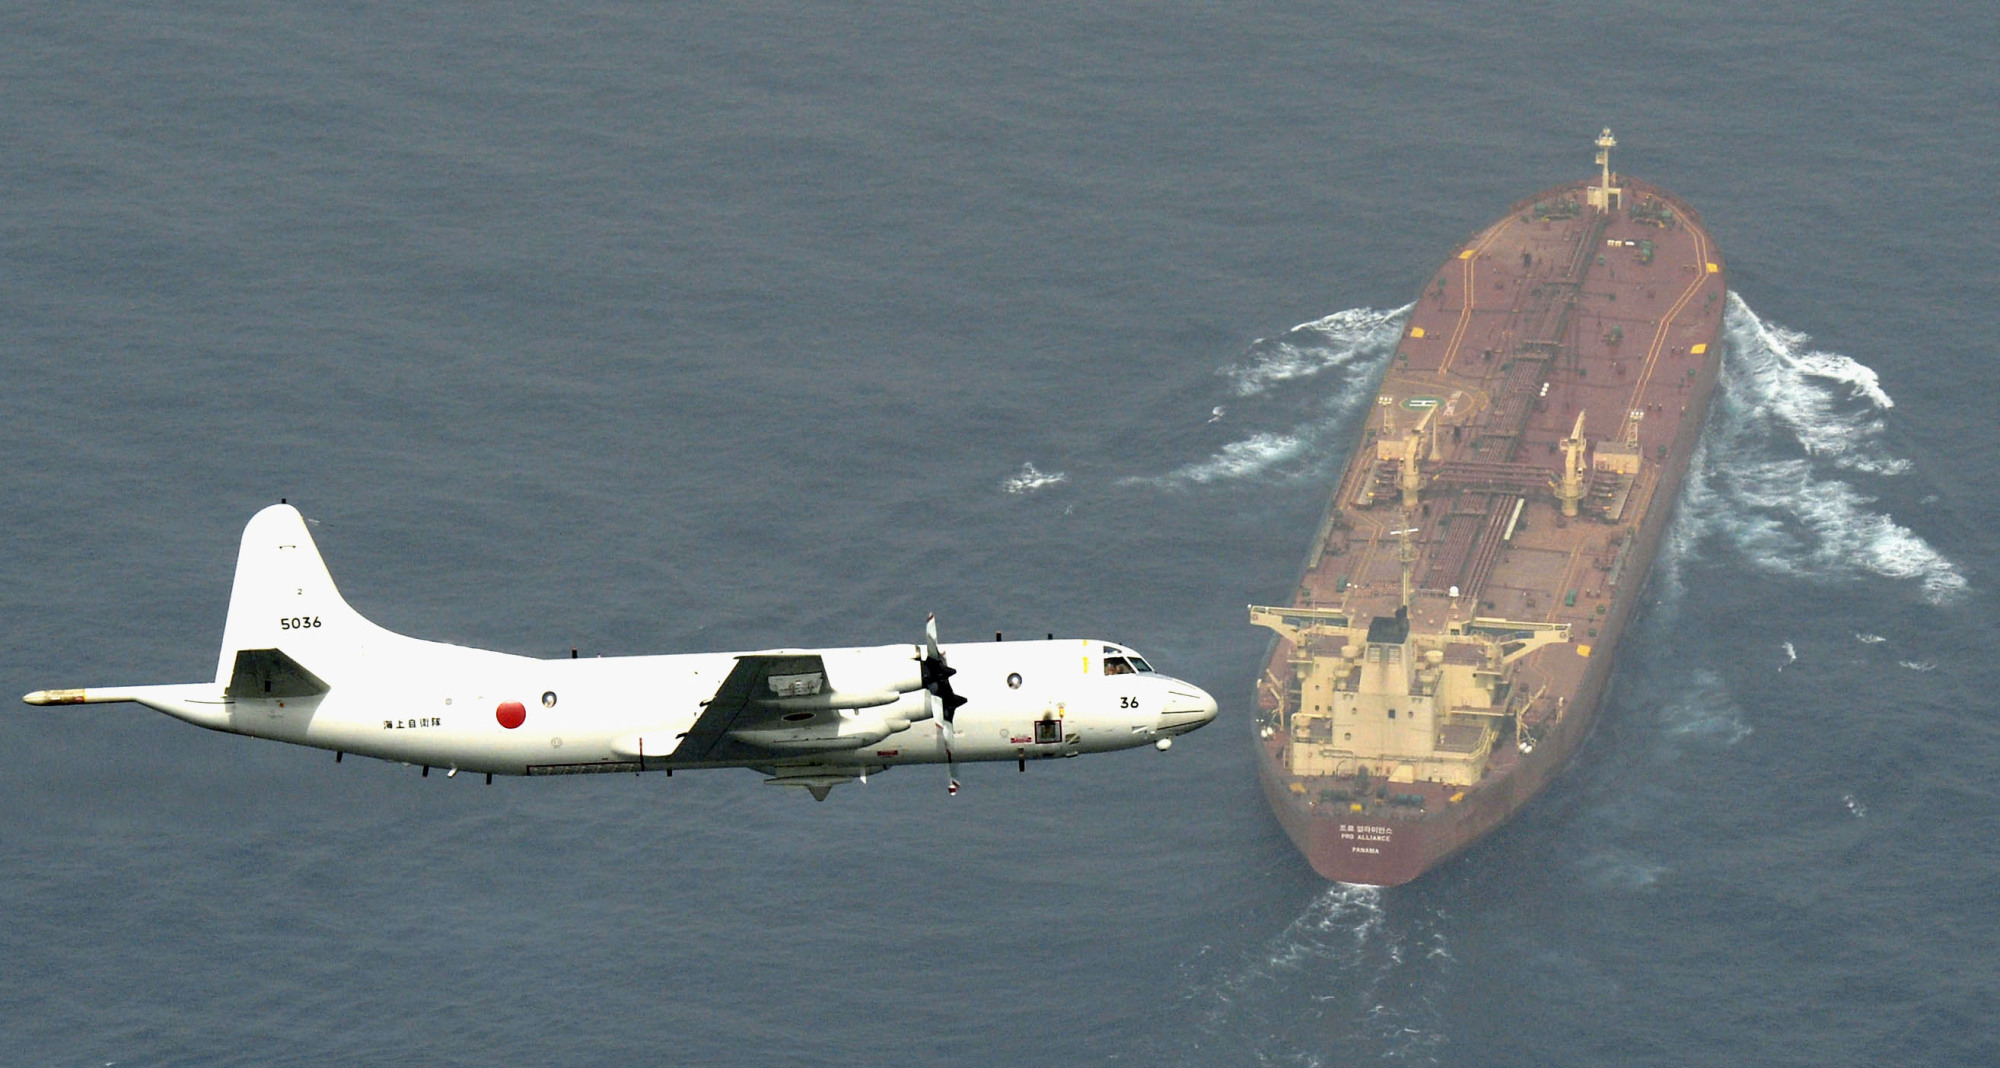 A Maritime Self-Defense Force P-3C patrol aircraft based in Djibouti is seen training over a tanker in the Gulf of Aden in August 2015. A P-3C plane is due to take part in a planned SDF mission to the Middle East. | KYODO